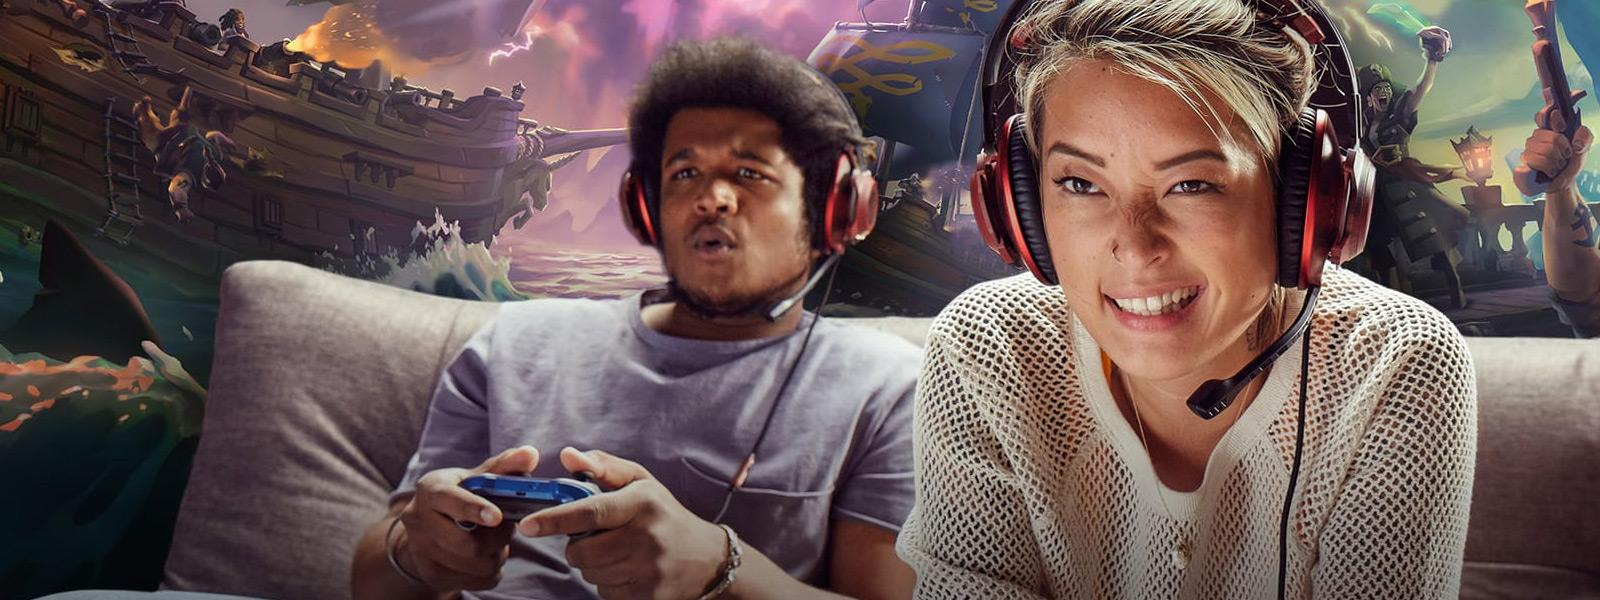 Amazon Prime Day video game deals for PS4, Switch, and Xbox — including lowest PS4 Pro price we've seen